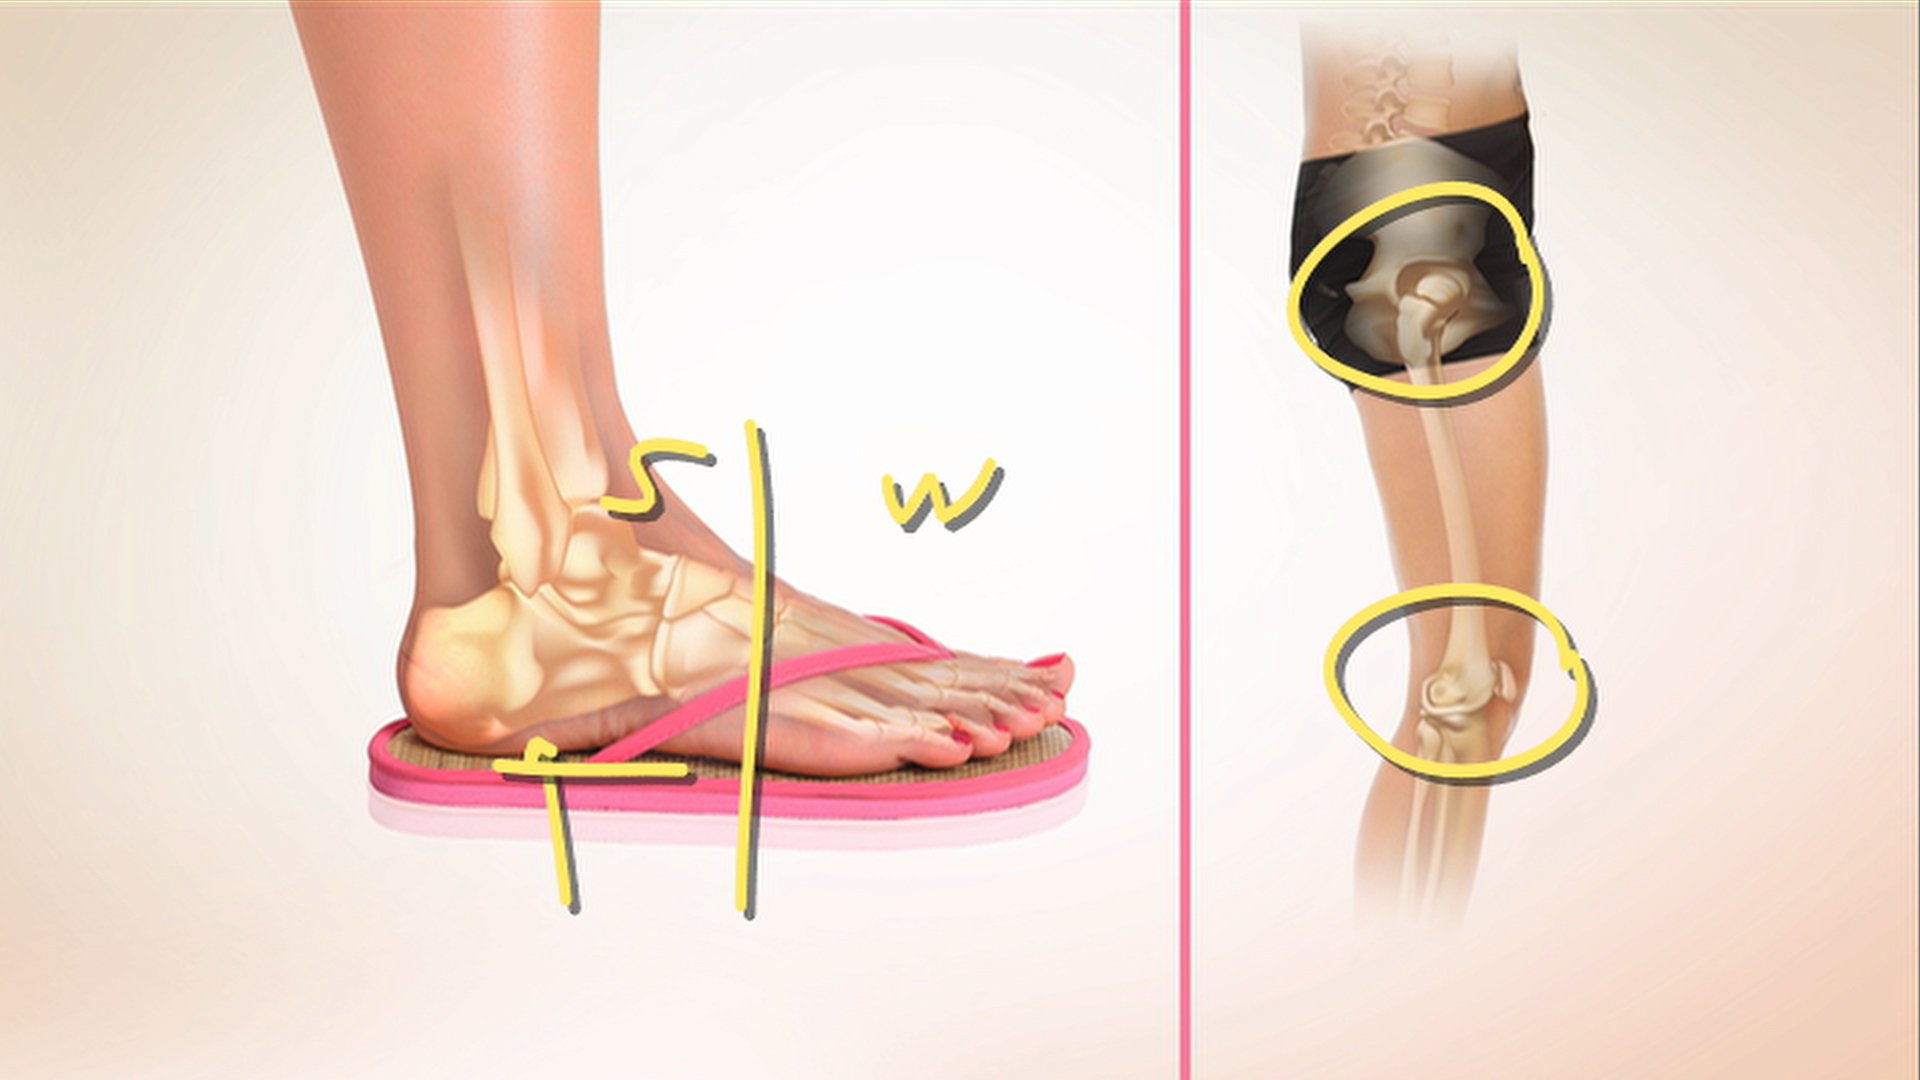 b02398d9bea89 How flip-flops may be damaging your feet